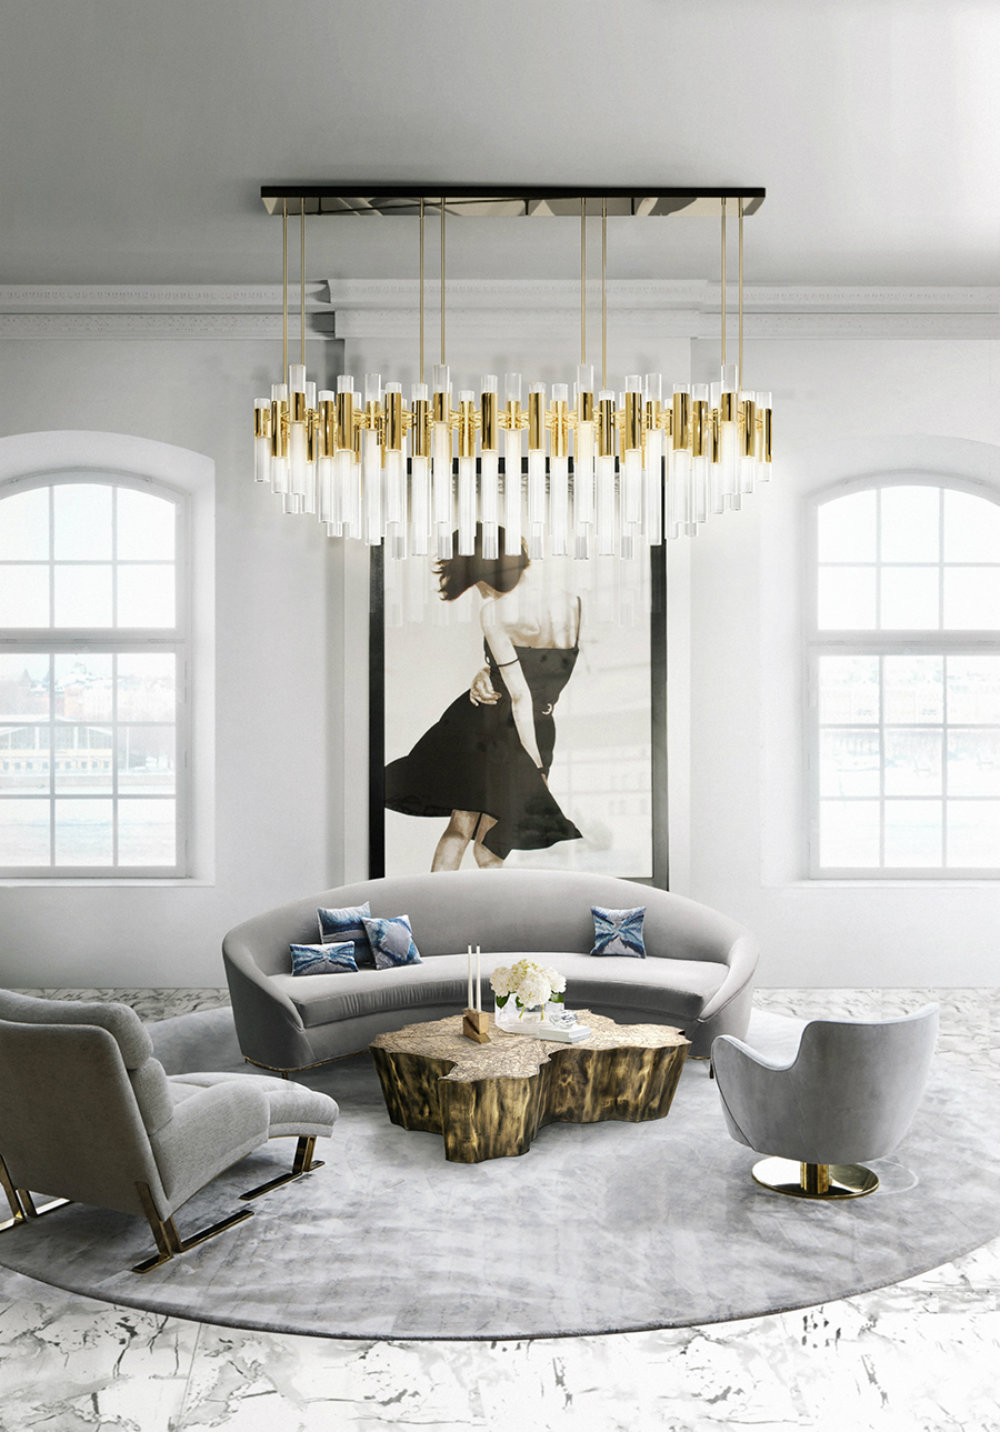 How To Pick The Perfect Chandelier Size  chandelier size How To Pick The Perfect Chandelier Size  How To Pick The Perfect Chandelier Size 3